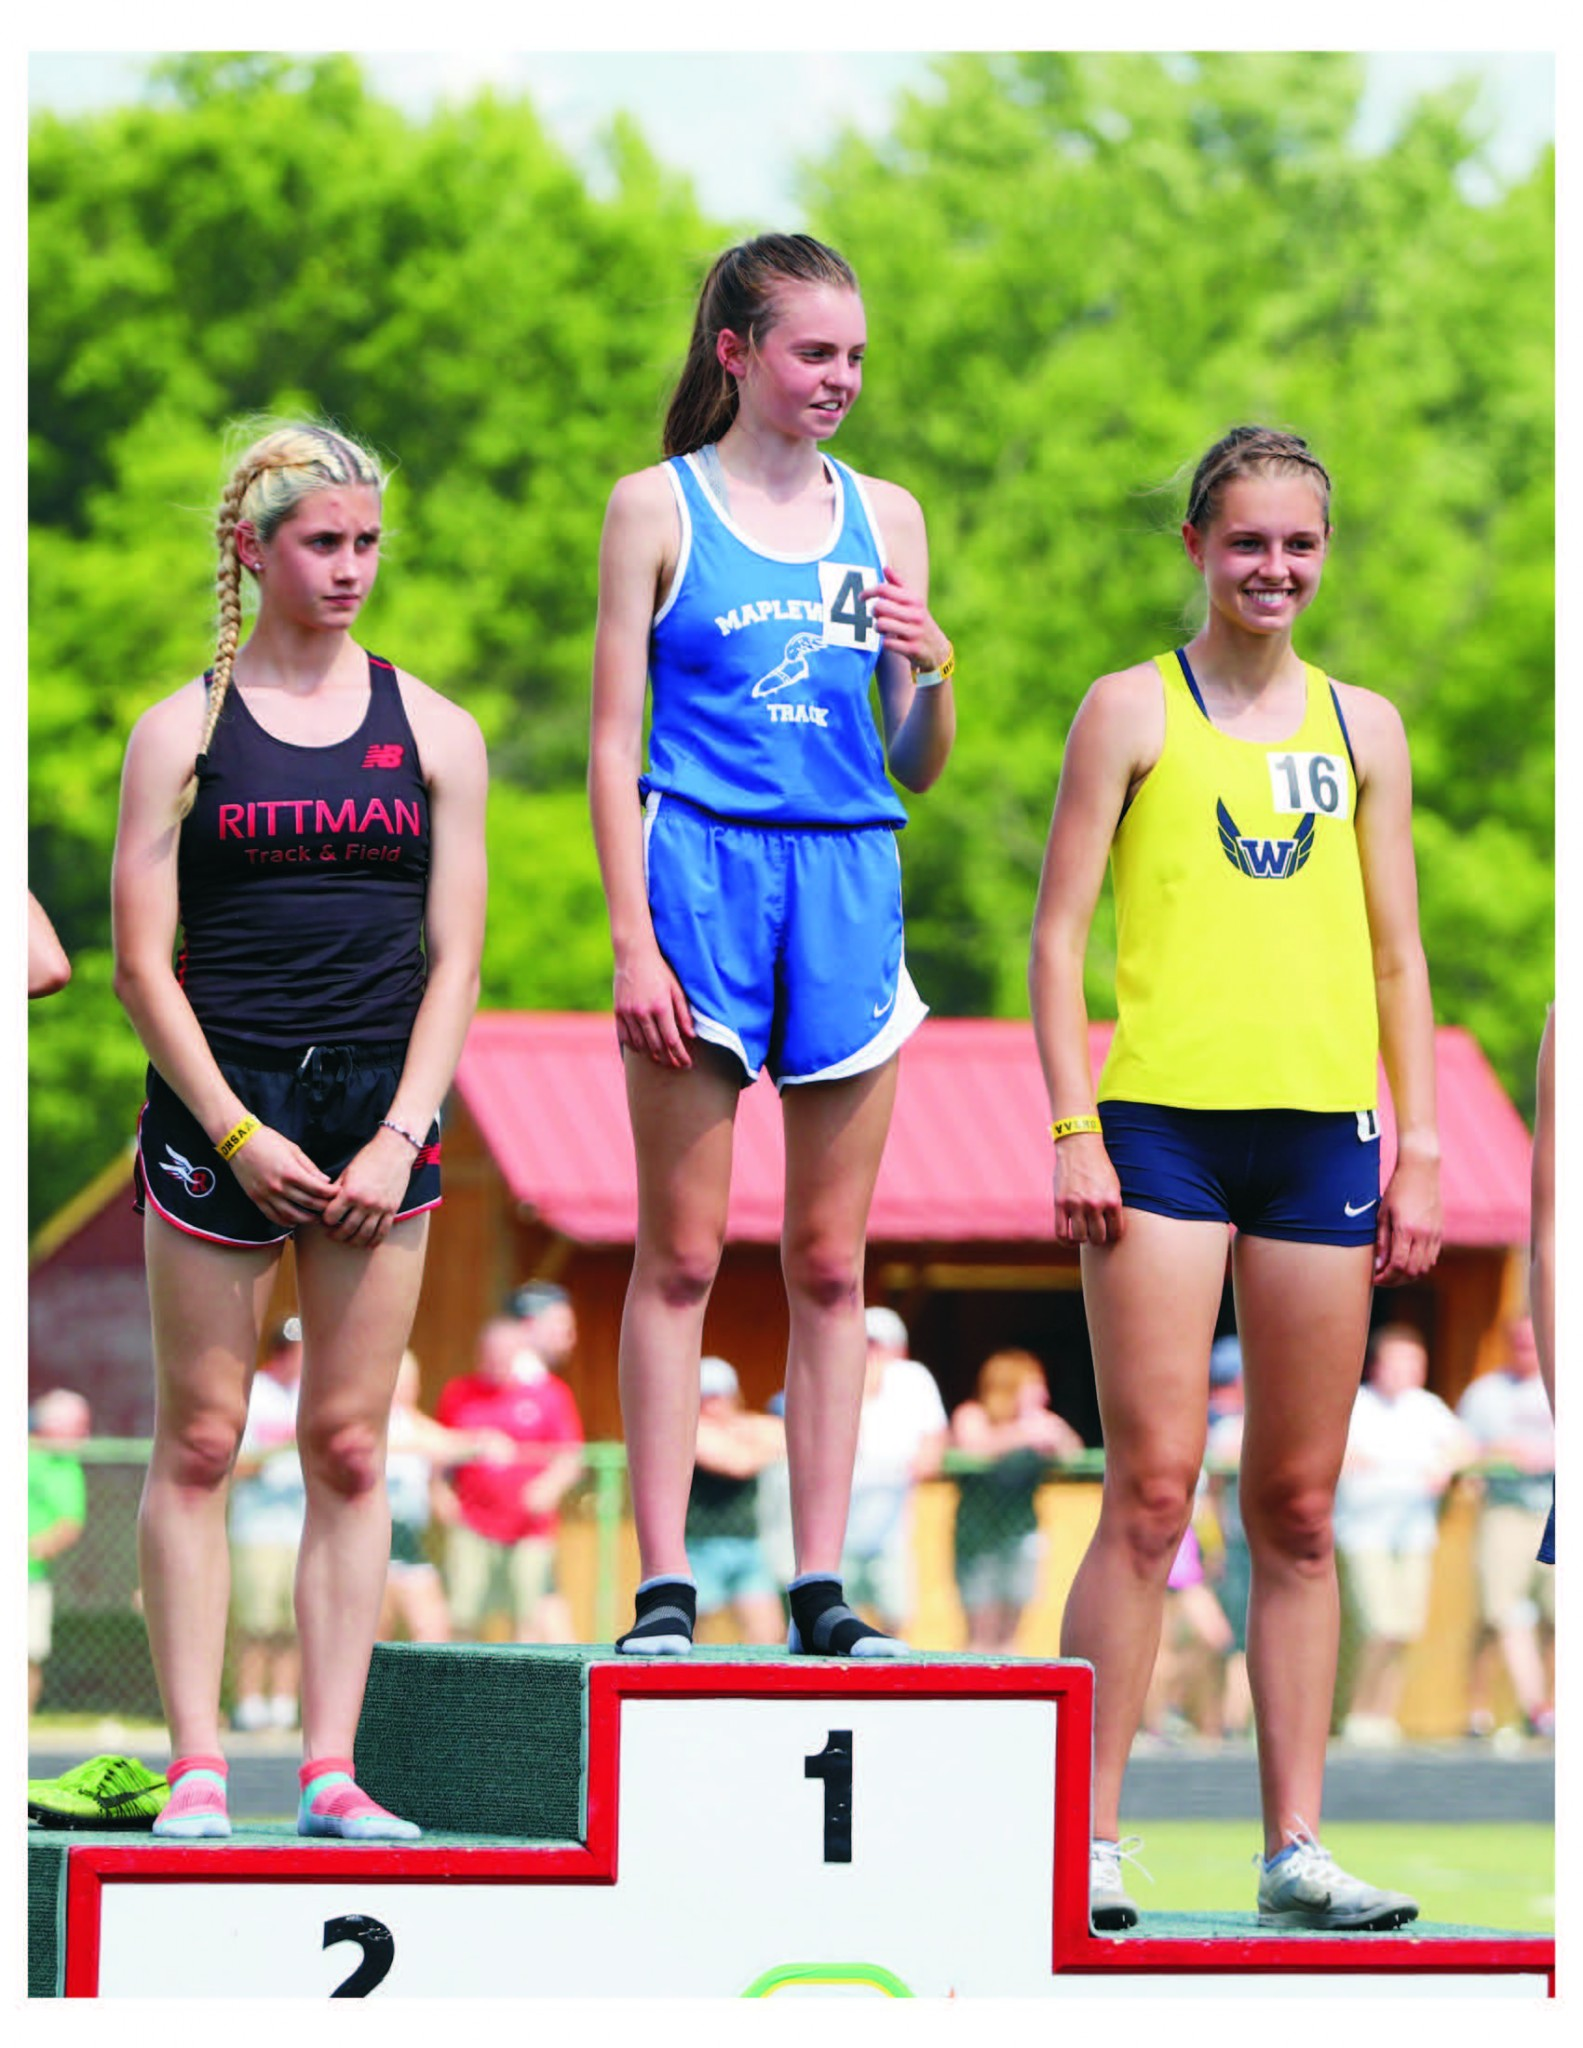 Woodmore senior Ava Beam (right) on the Division III state podium with Mapleton freshman Caleigh Richards placing first (center) and Rittman sophomore Pyper Gibson (left) second. (Photo by Julie Beam)